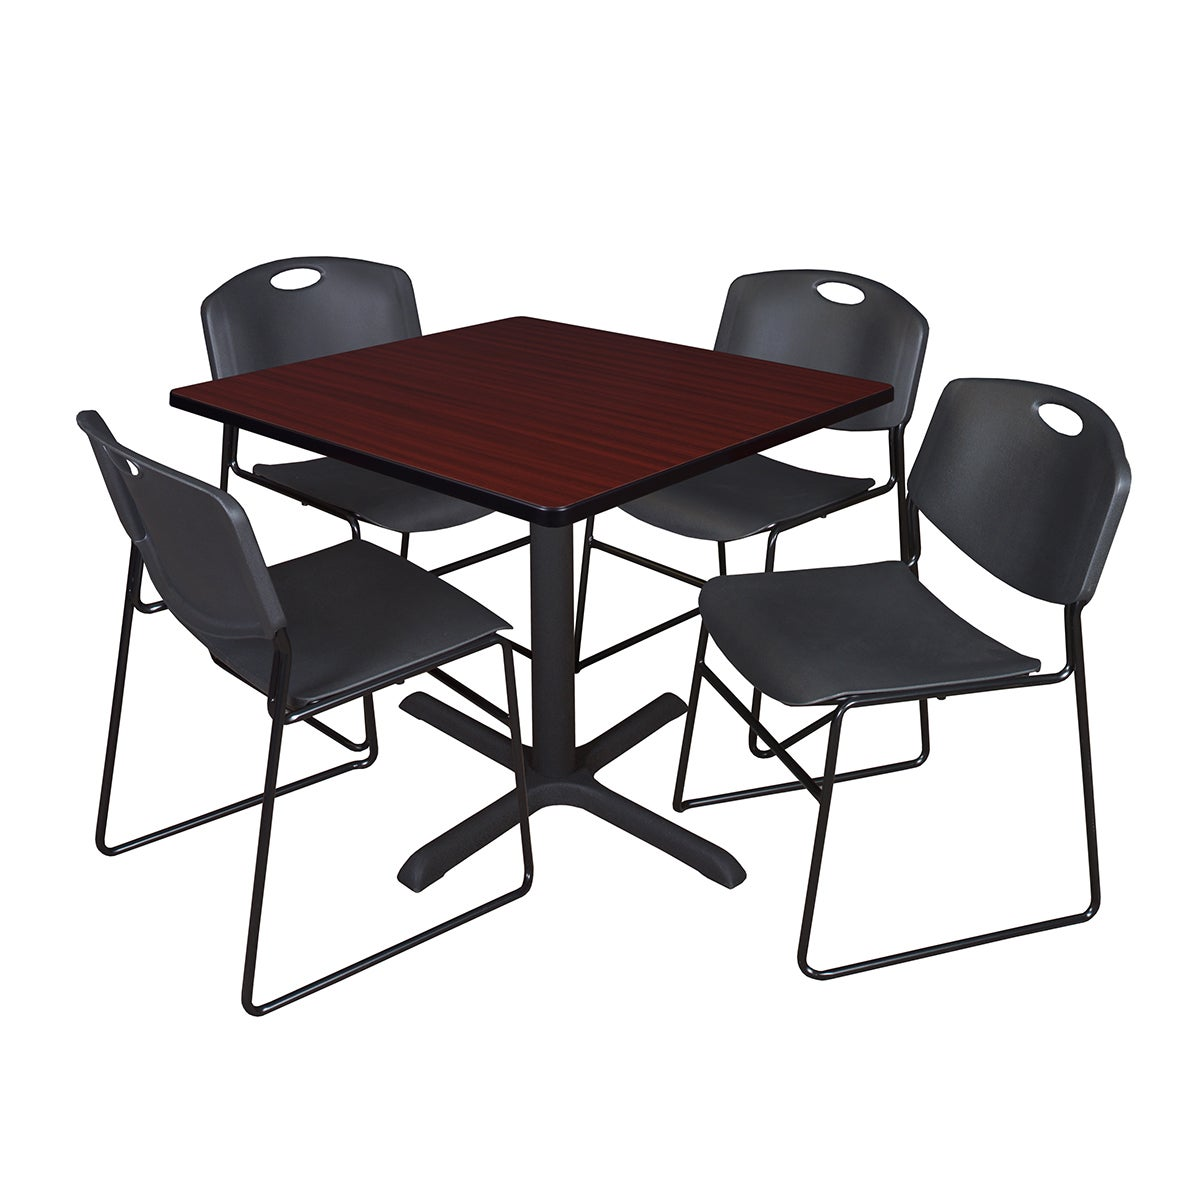 Details About 36 Inch Square Table And 4 Zeng Stackable Black Chairs